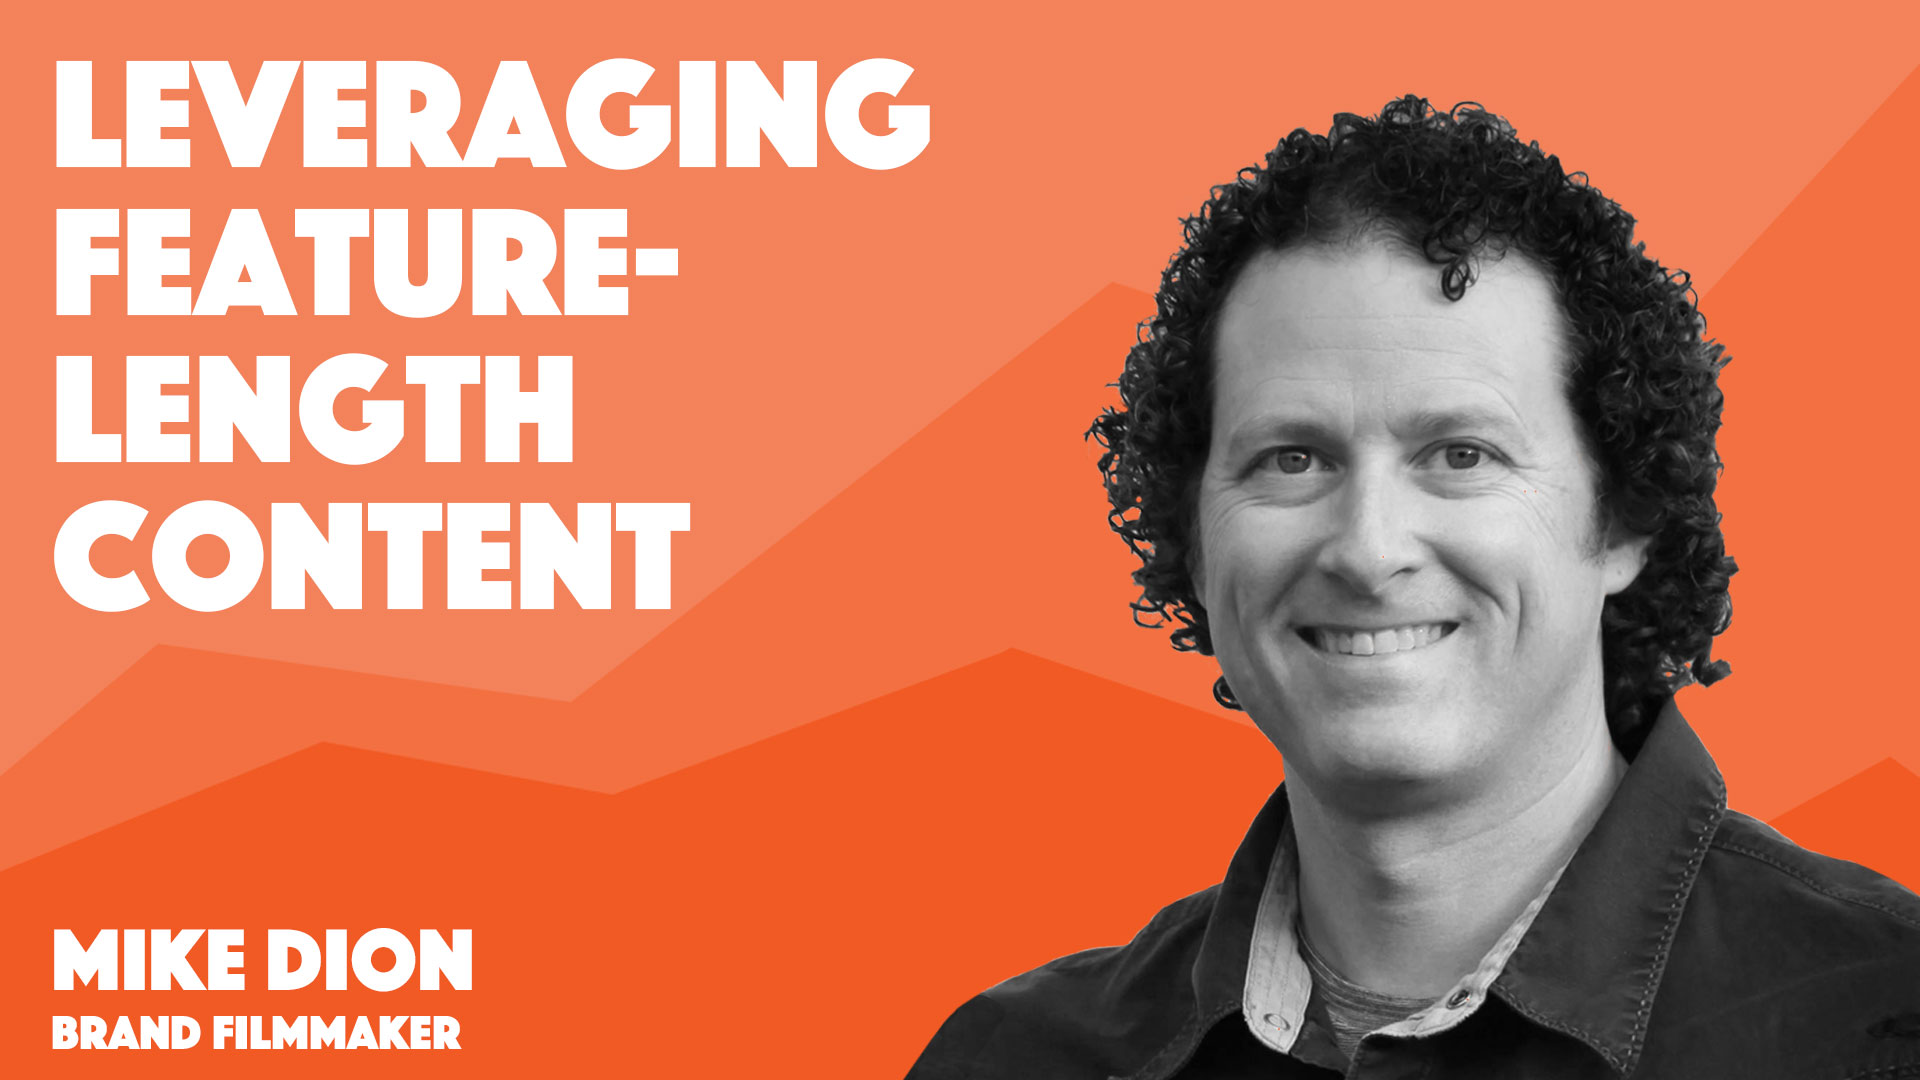 video session cover shows how mike dion uses documentary films to create content marketing for brands